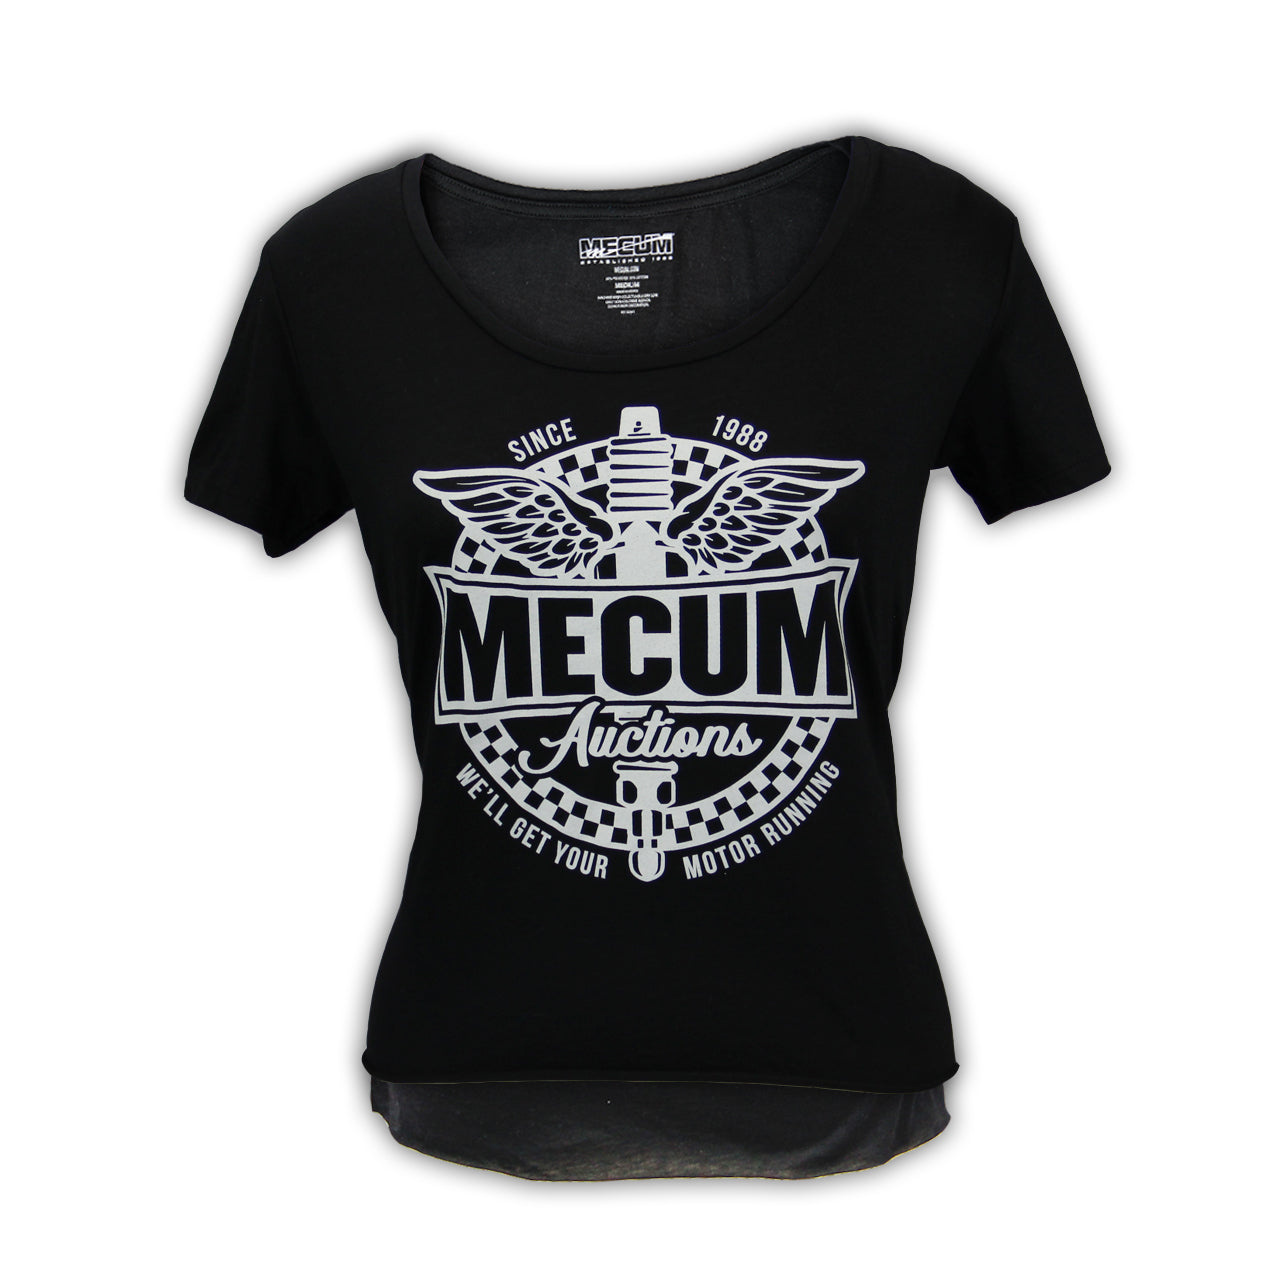 Photo of 2020 Mecum Woman's Motor Riding T-Shirt front